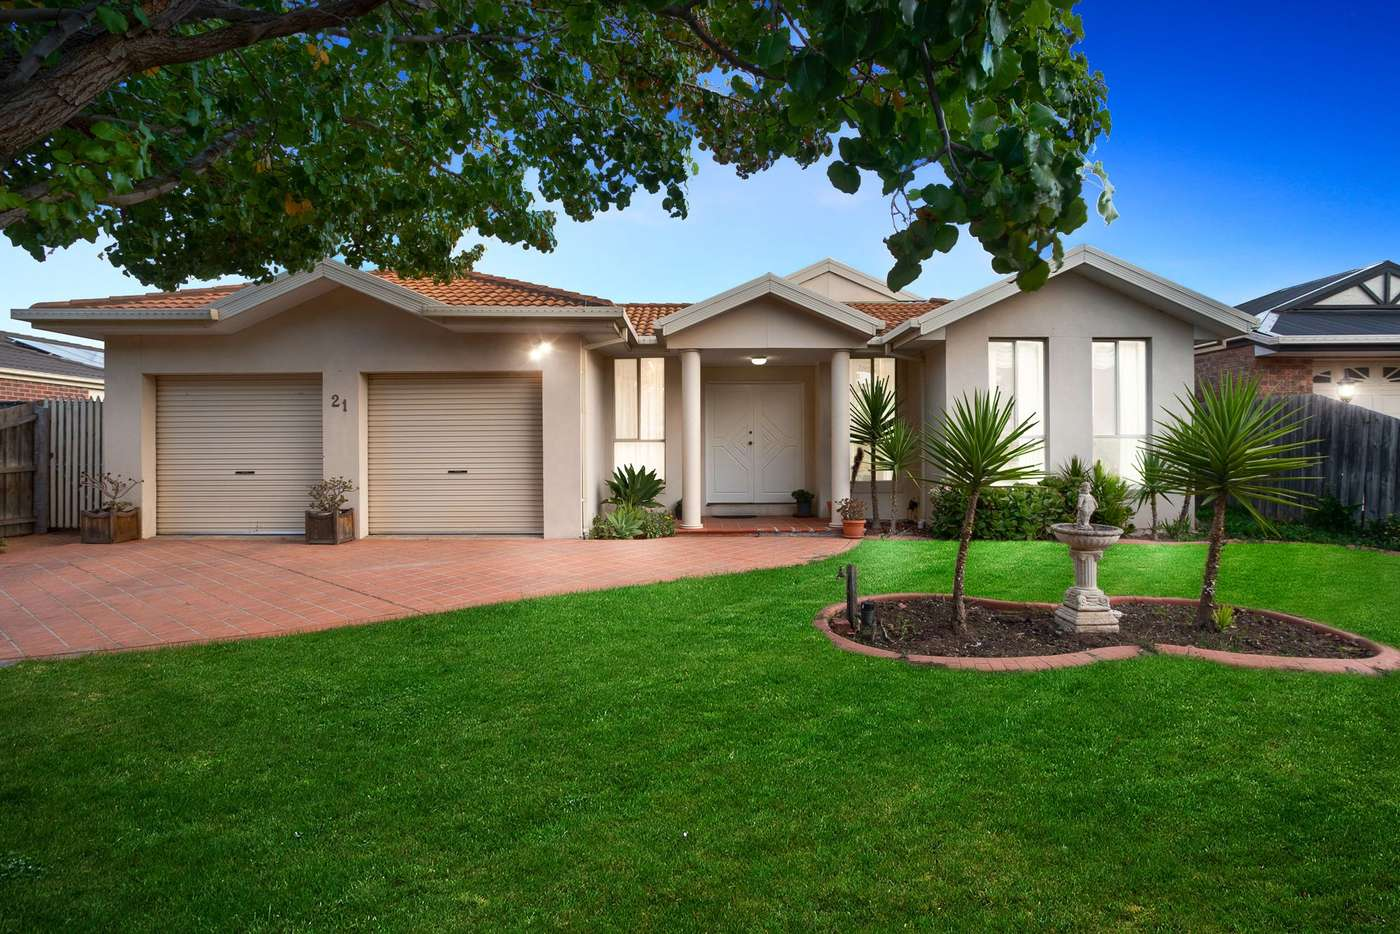 Main view of Homely house listing, 21 Southbank Walk, Taylors Hill VIC 3037